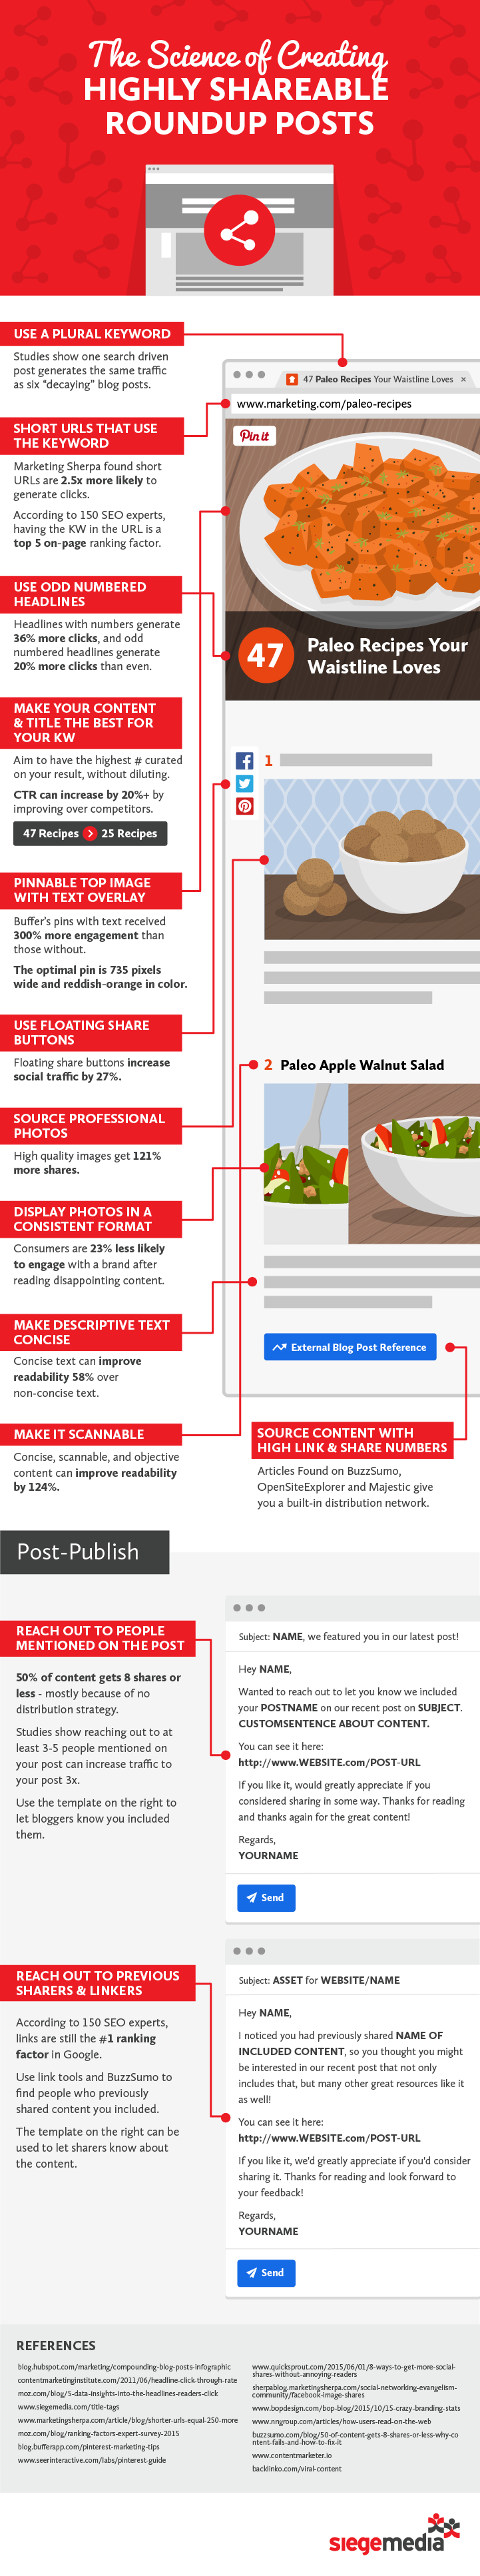 The Anatomy of a Highly Shareable List Post [Infographic] | 10 ...